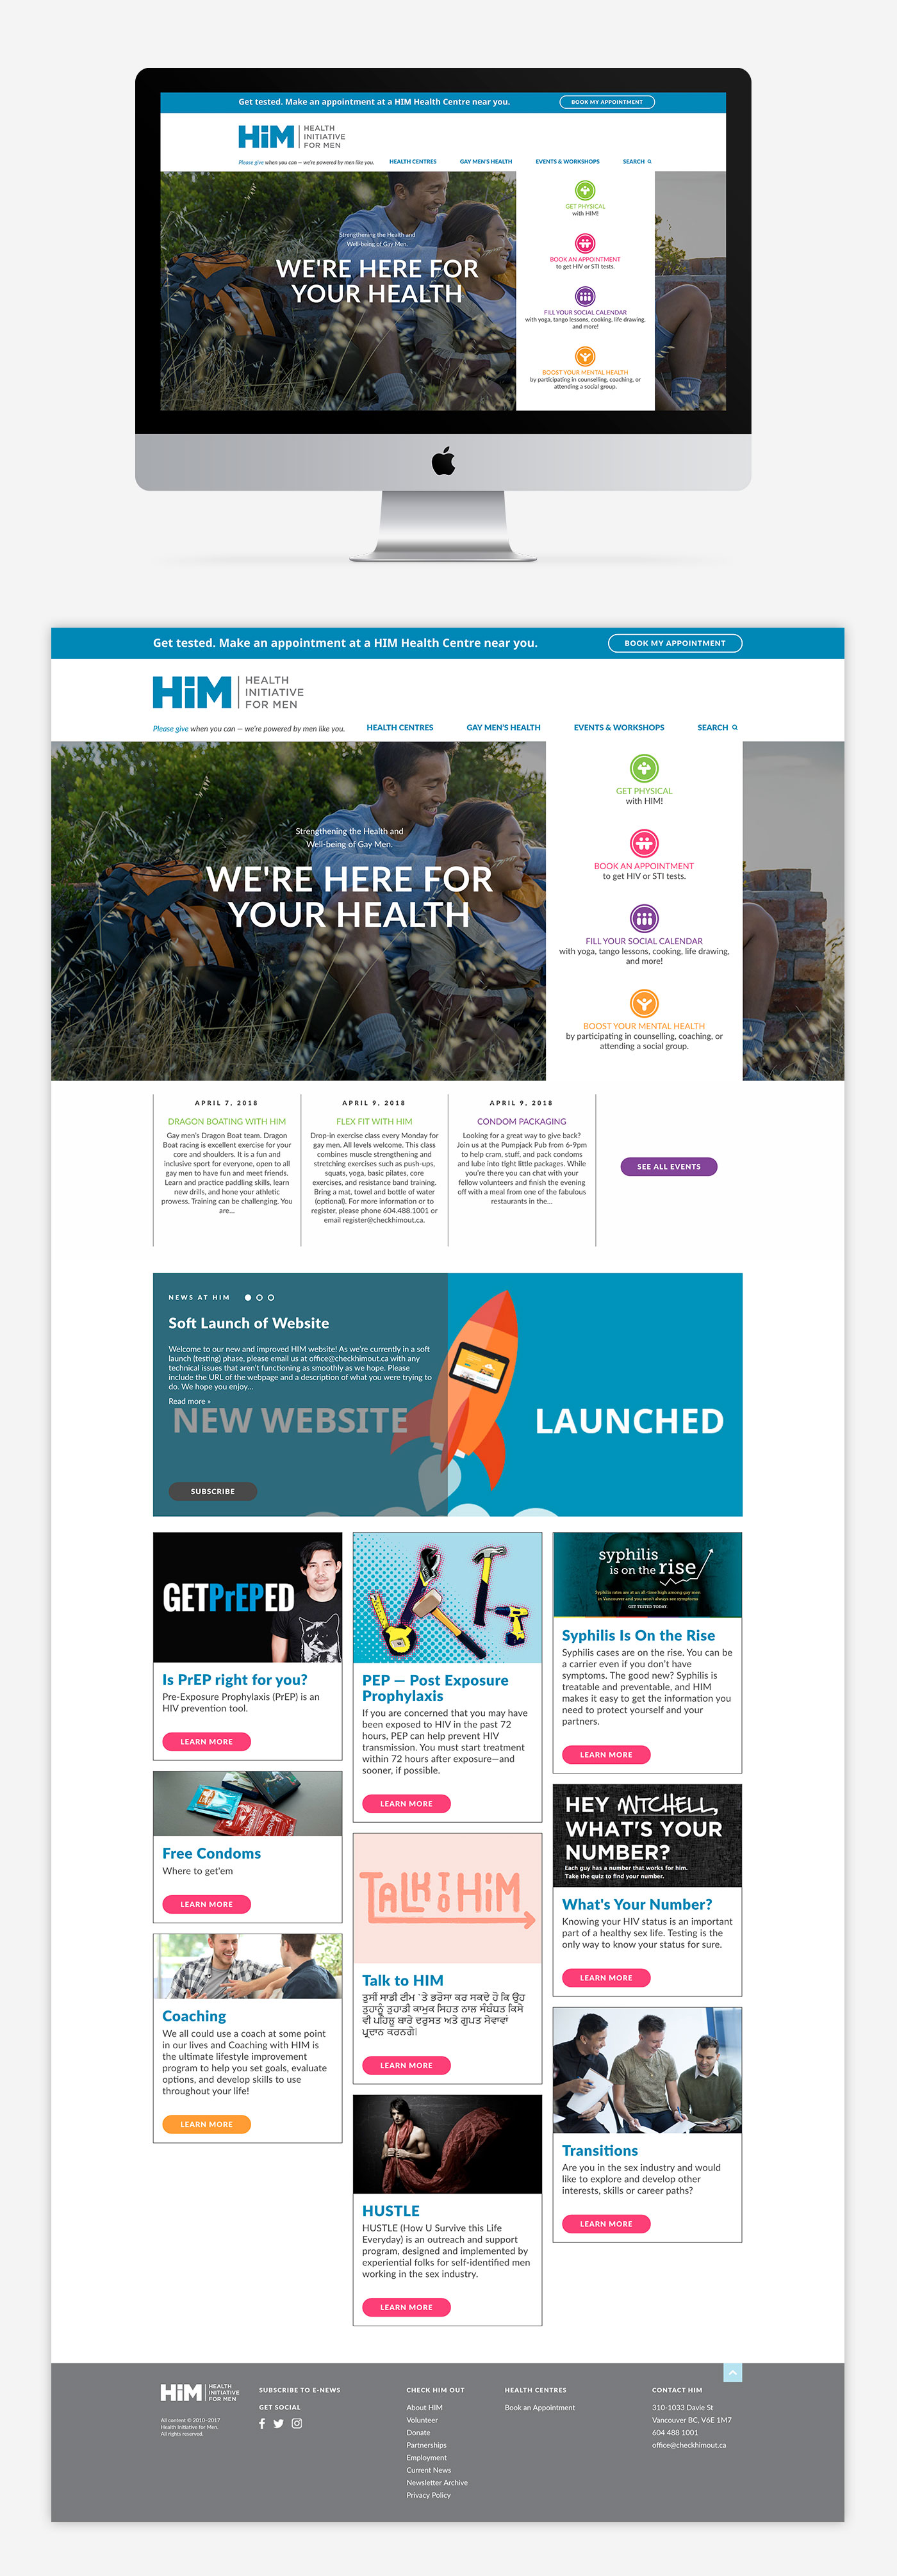 Web design for Health Initiative for Men, by Flipside Creative.